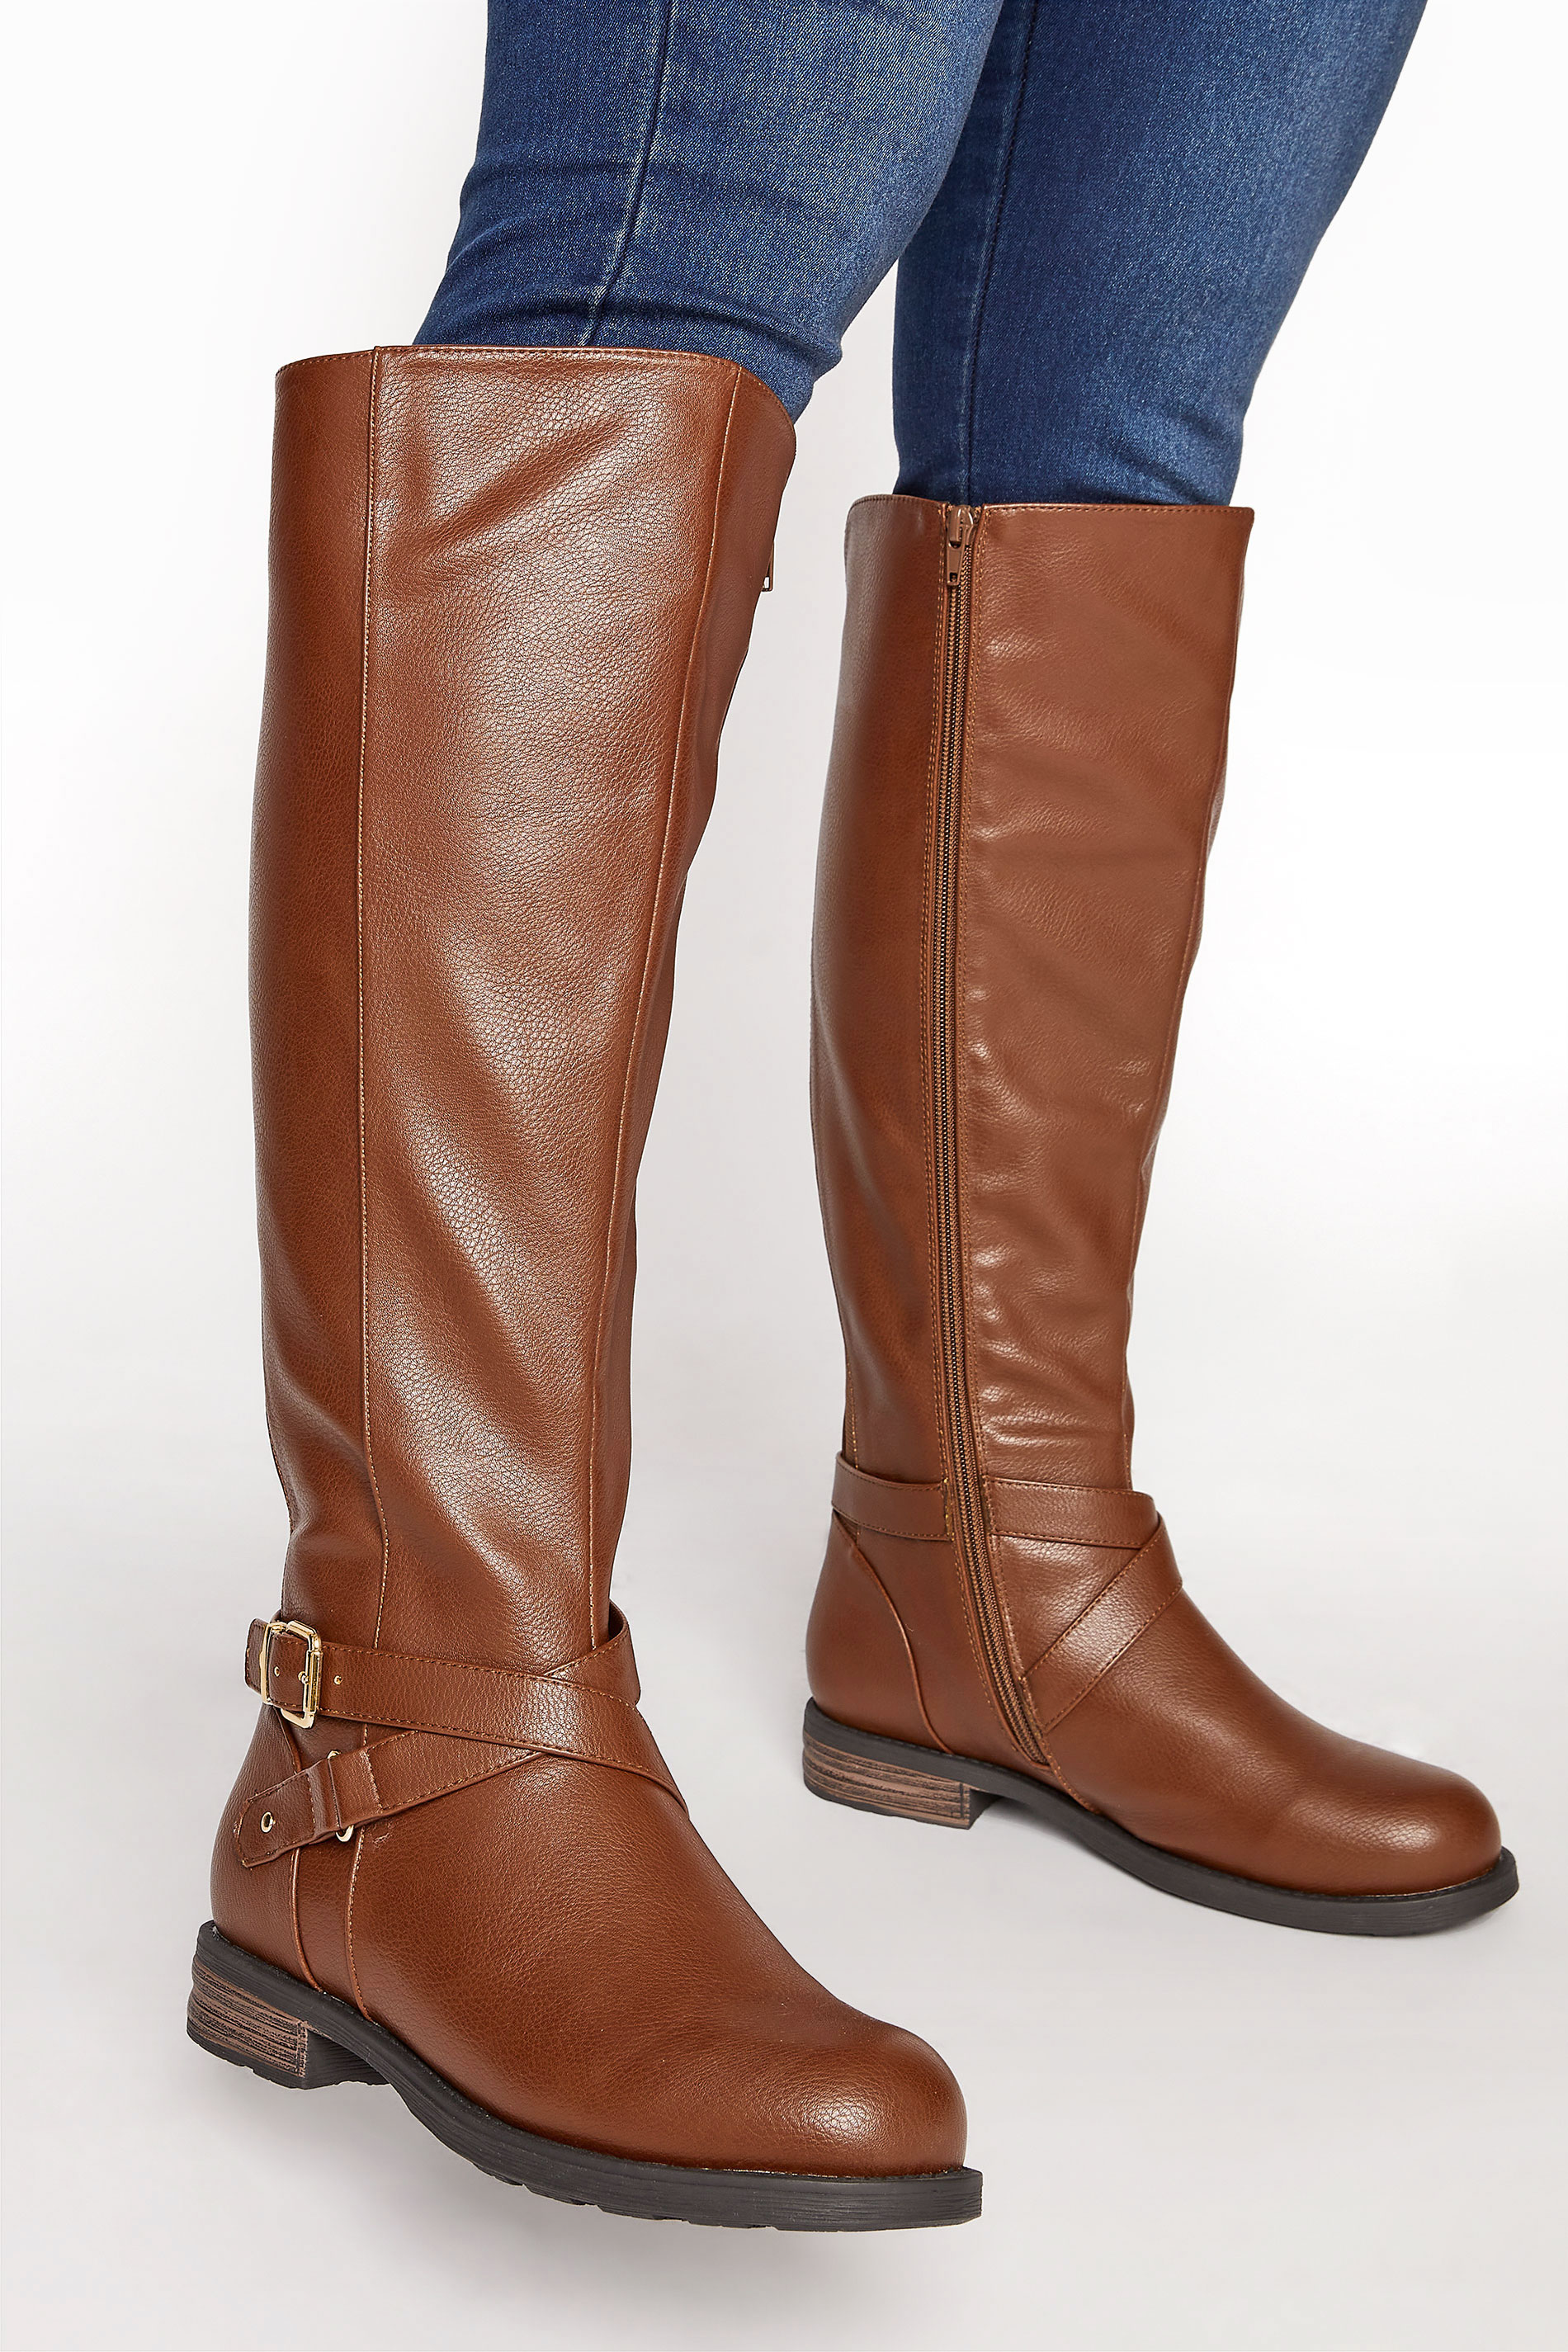 Brown Faux Leather Buckle Knee High Boots In Extra Wide Fit_M.jpg